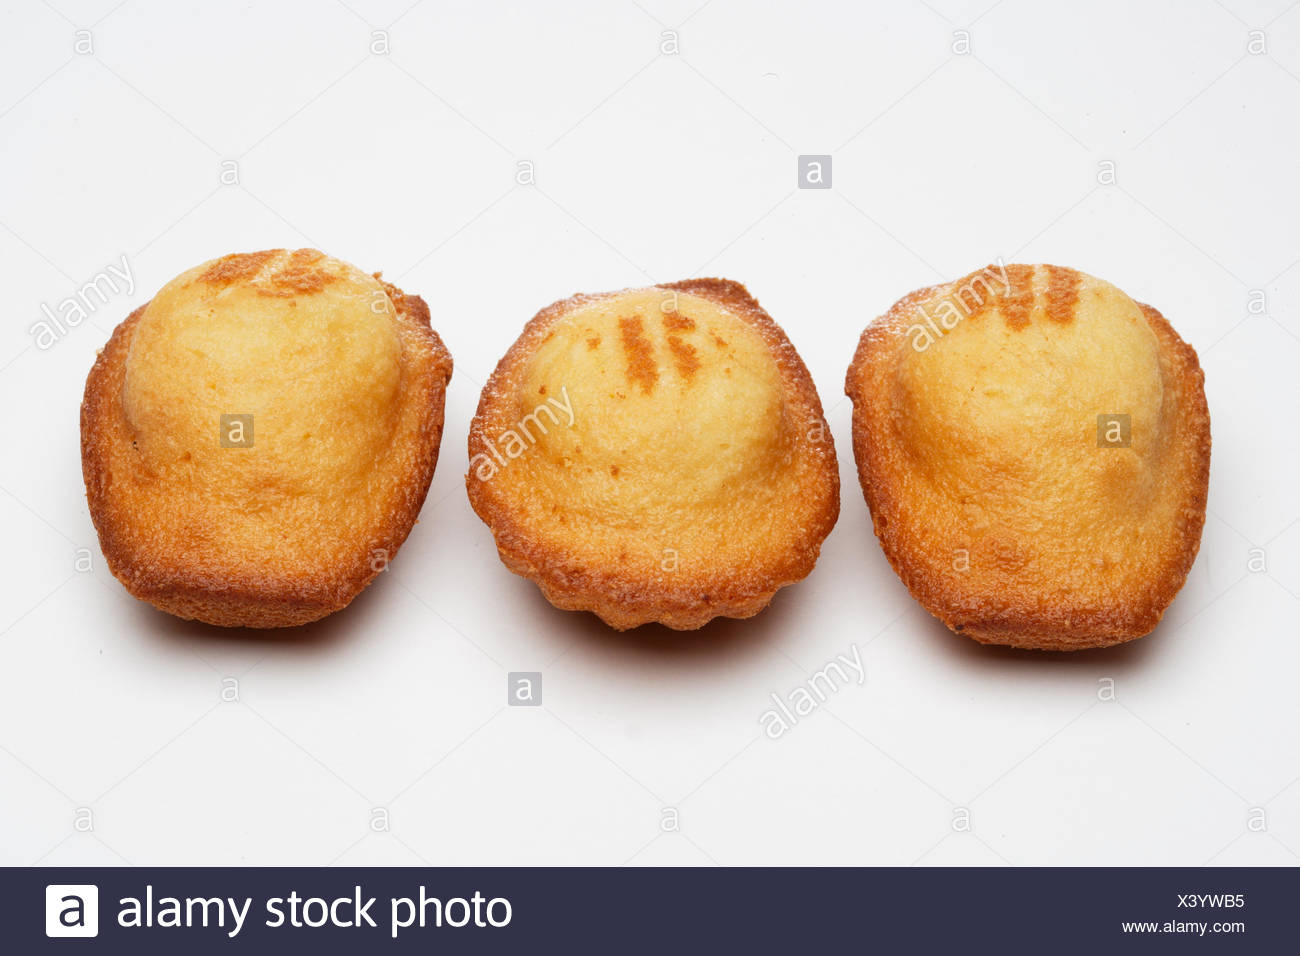 Trois madeleines, close-up Photo Stock